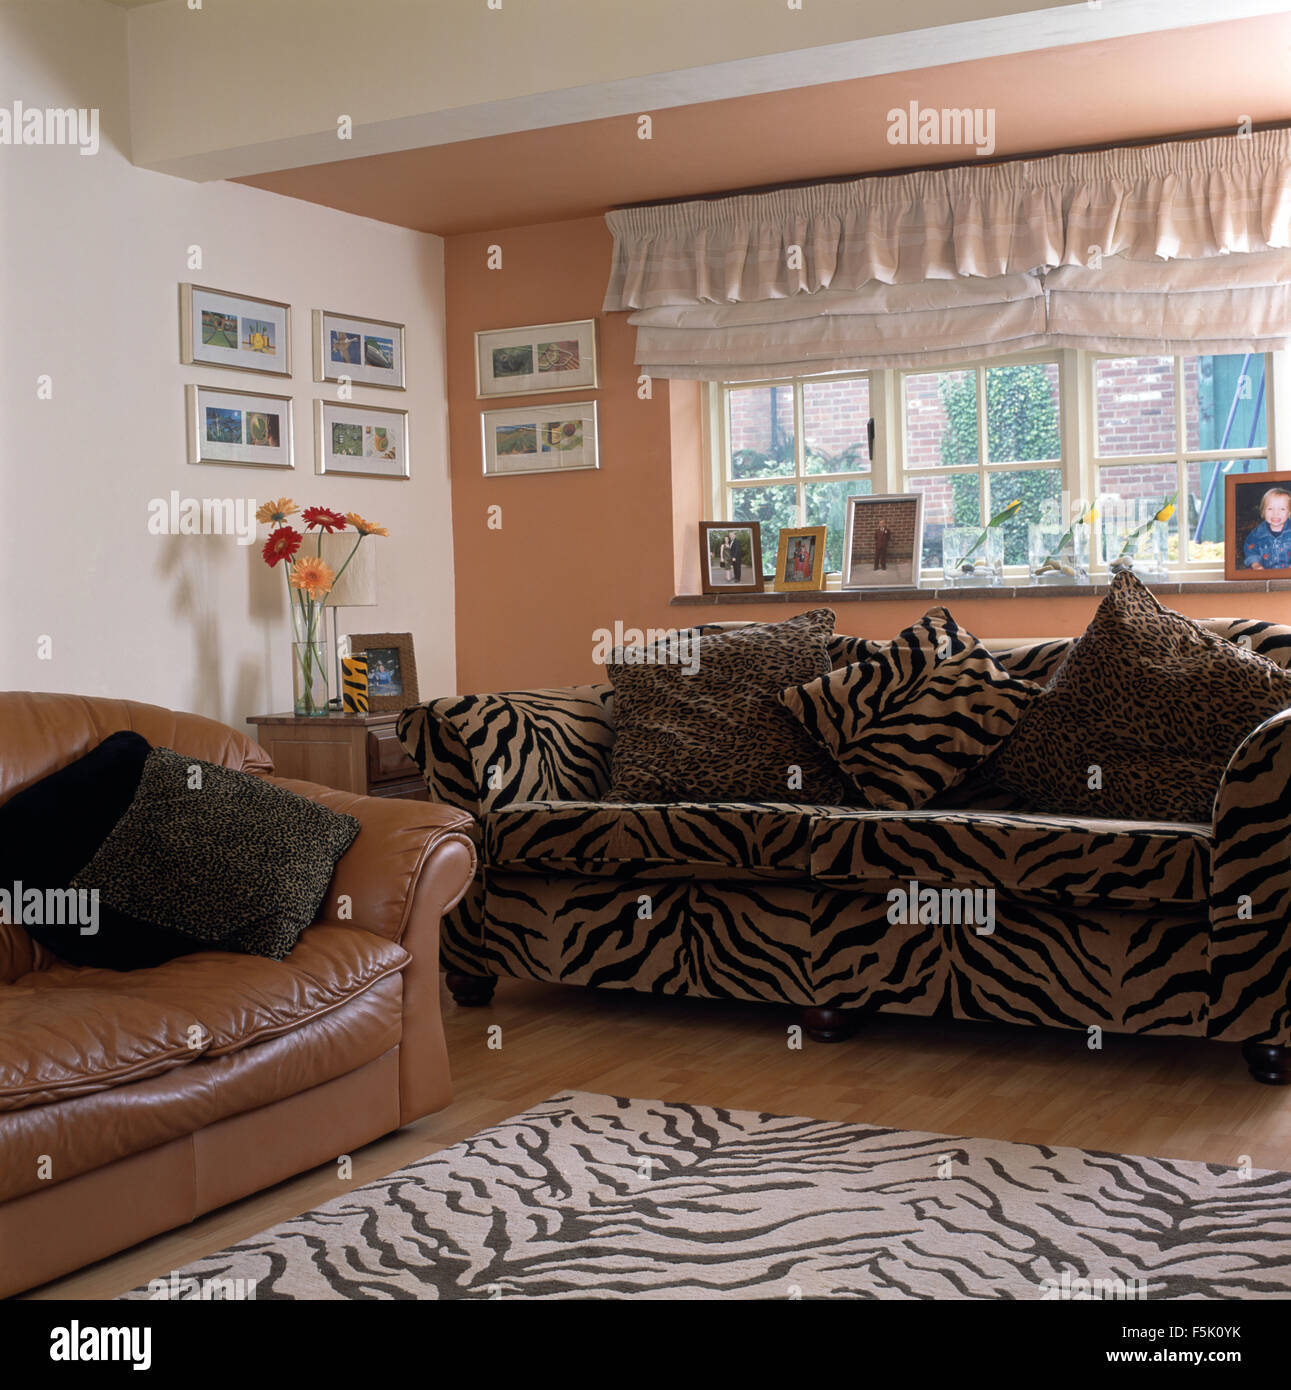 tiger print chair back pain office frilled blind above sofa and matching rug in